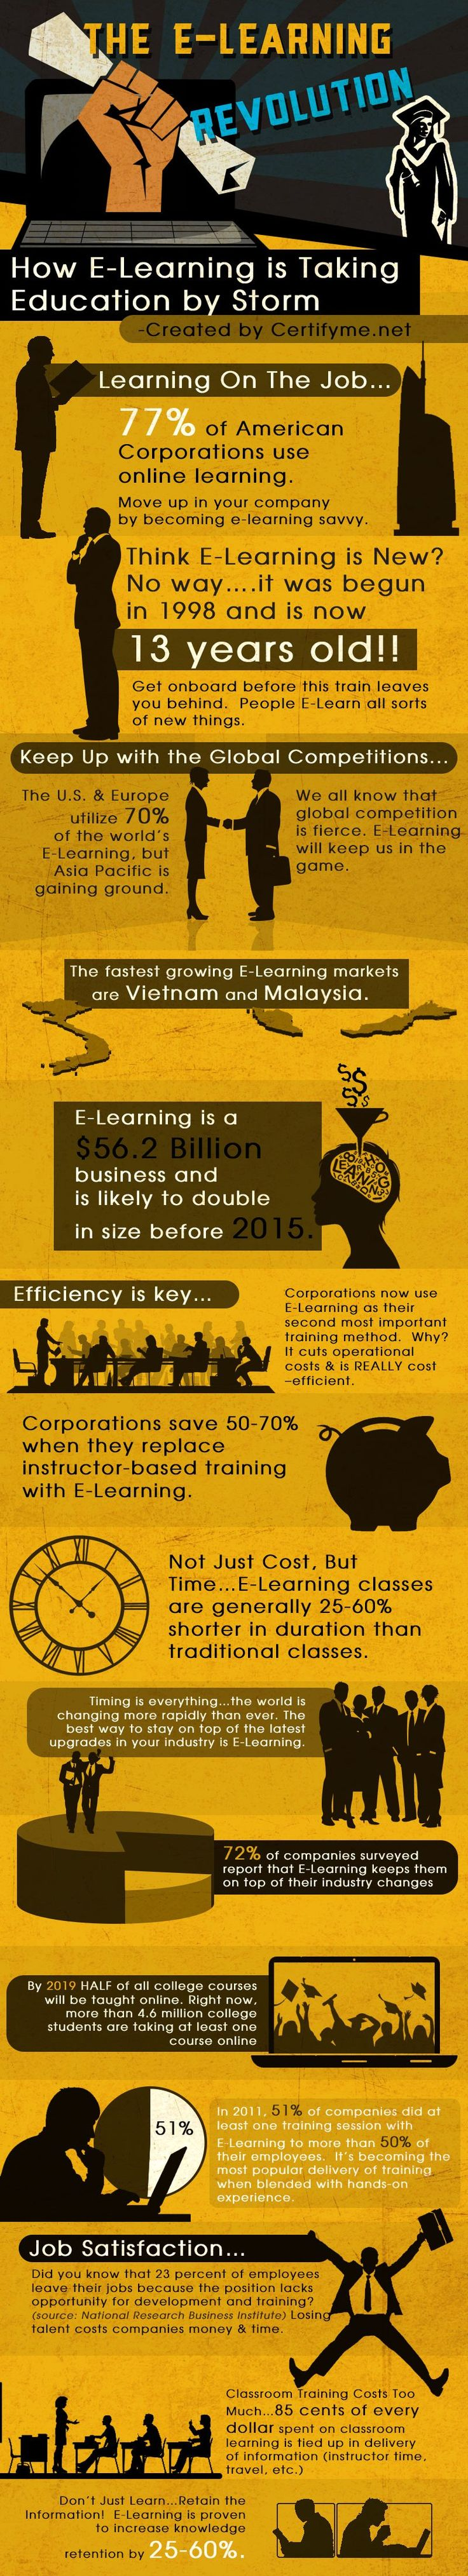 Important Statistics about the eLearning Market.